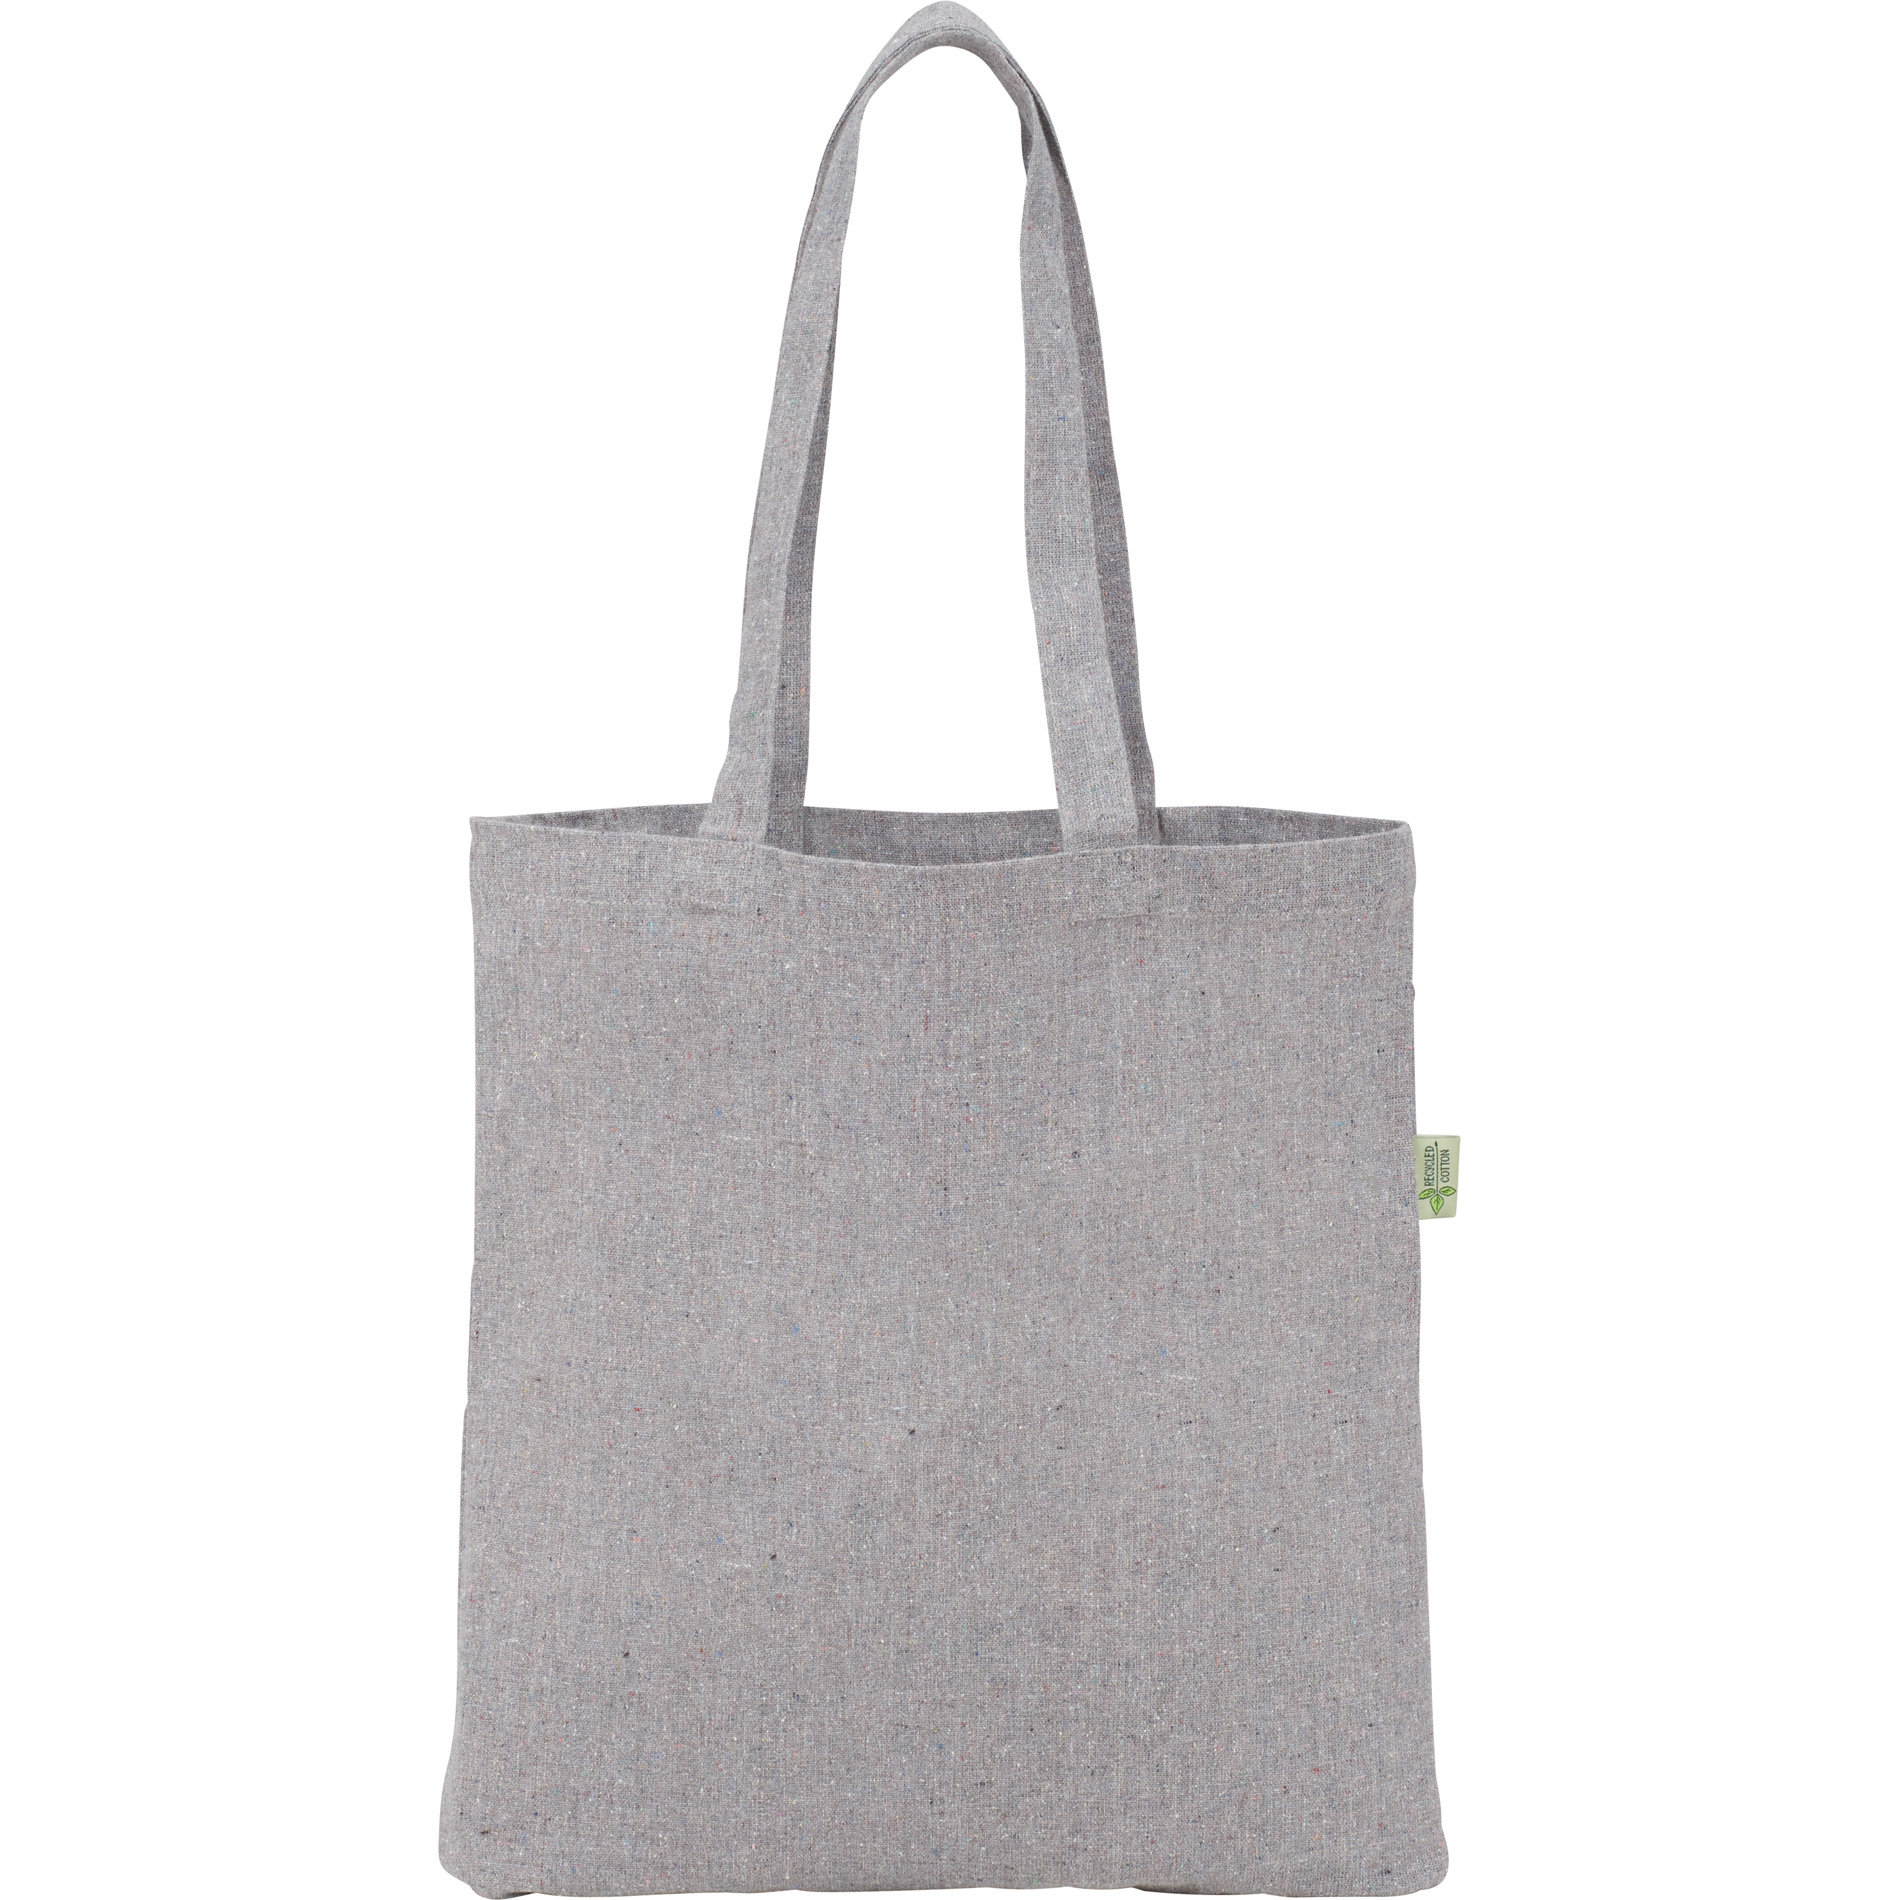 LEEDS Recycled Cotton Convention Tote from NYFifth